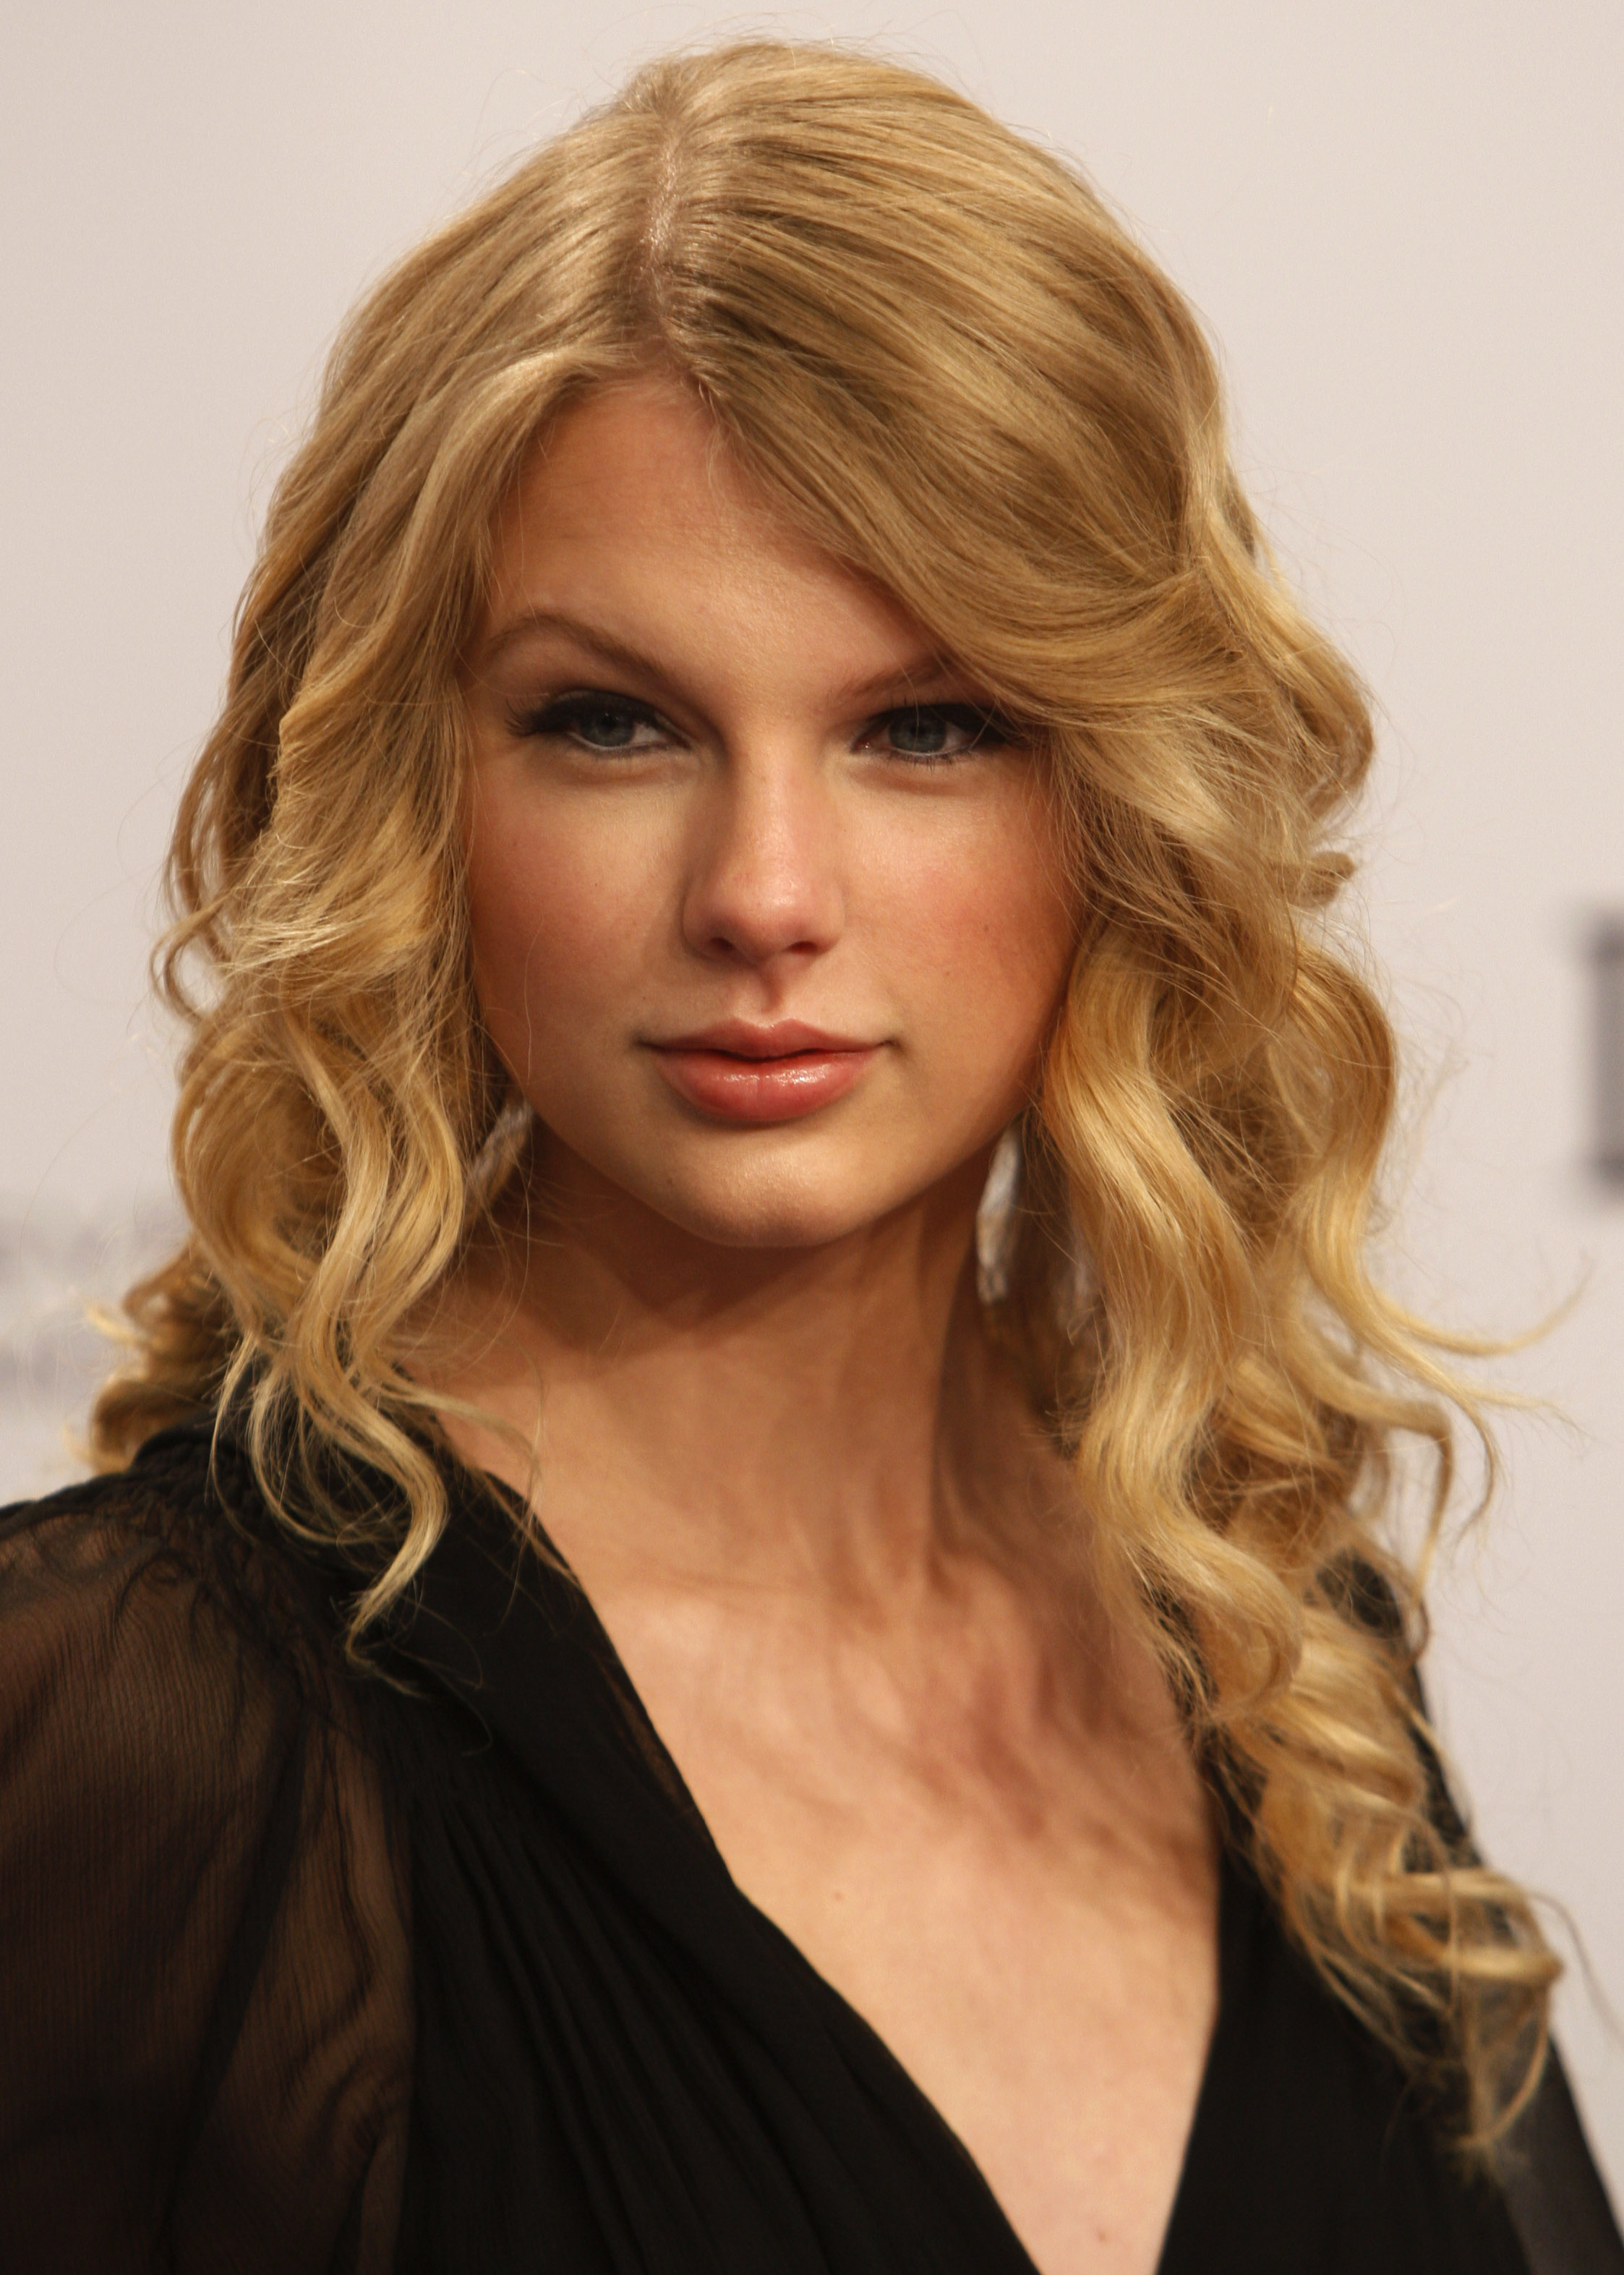 Practical Joking Country Pop Star Taylor Swift Sells Out